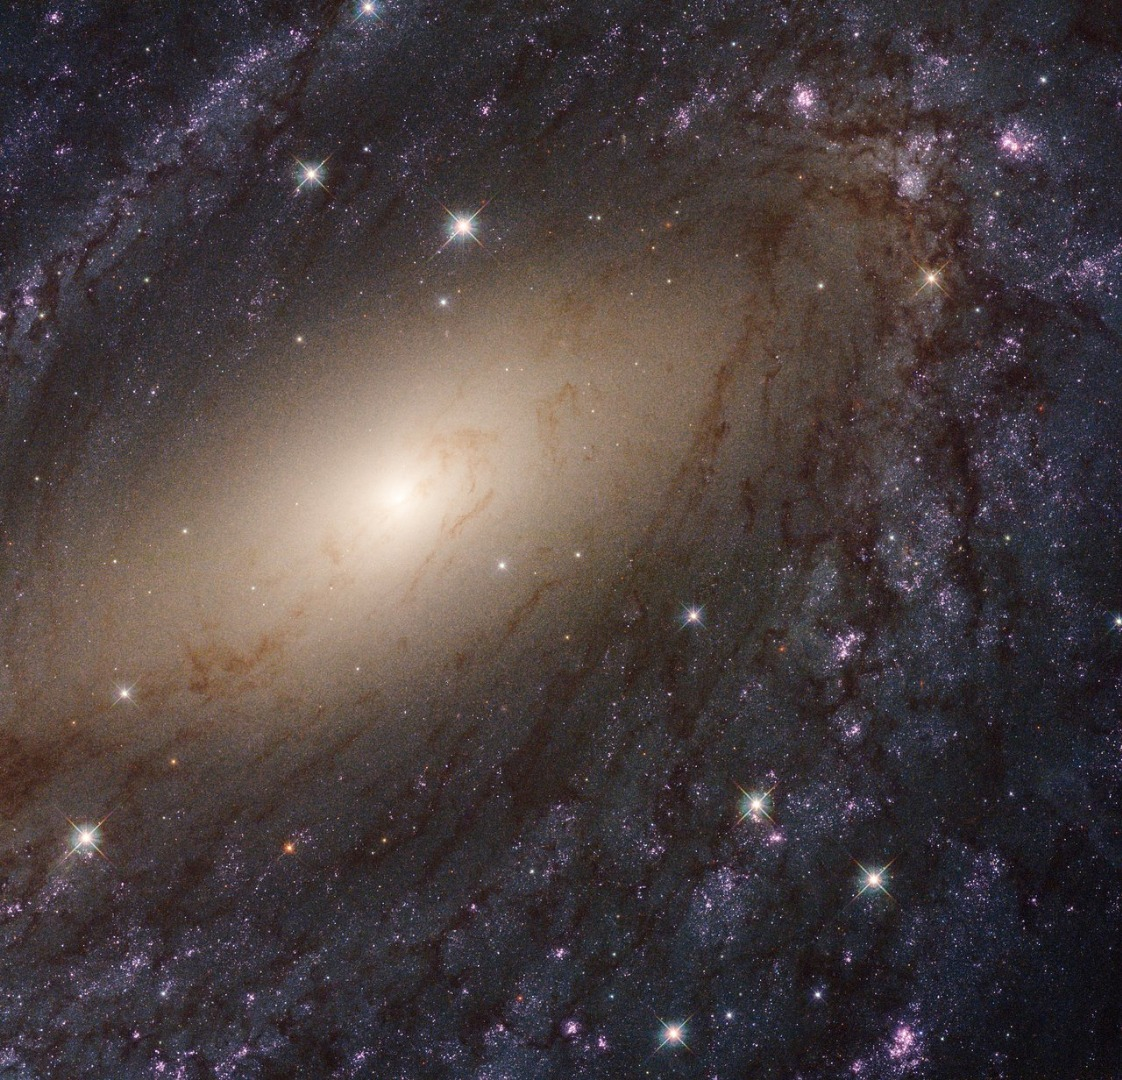 Hubble reveals the local universe in glorious ultraviolet detail